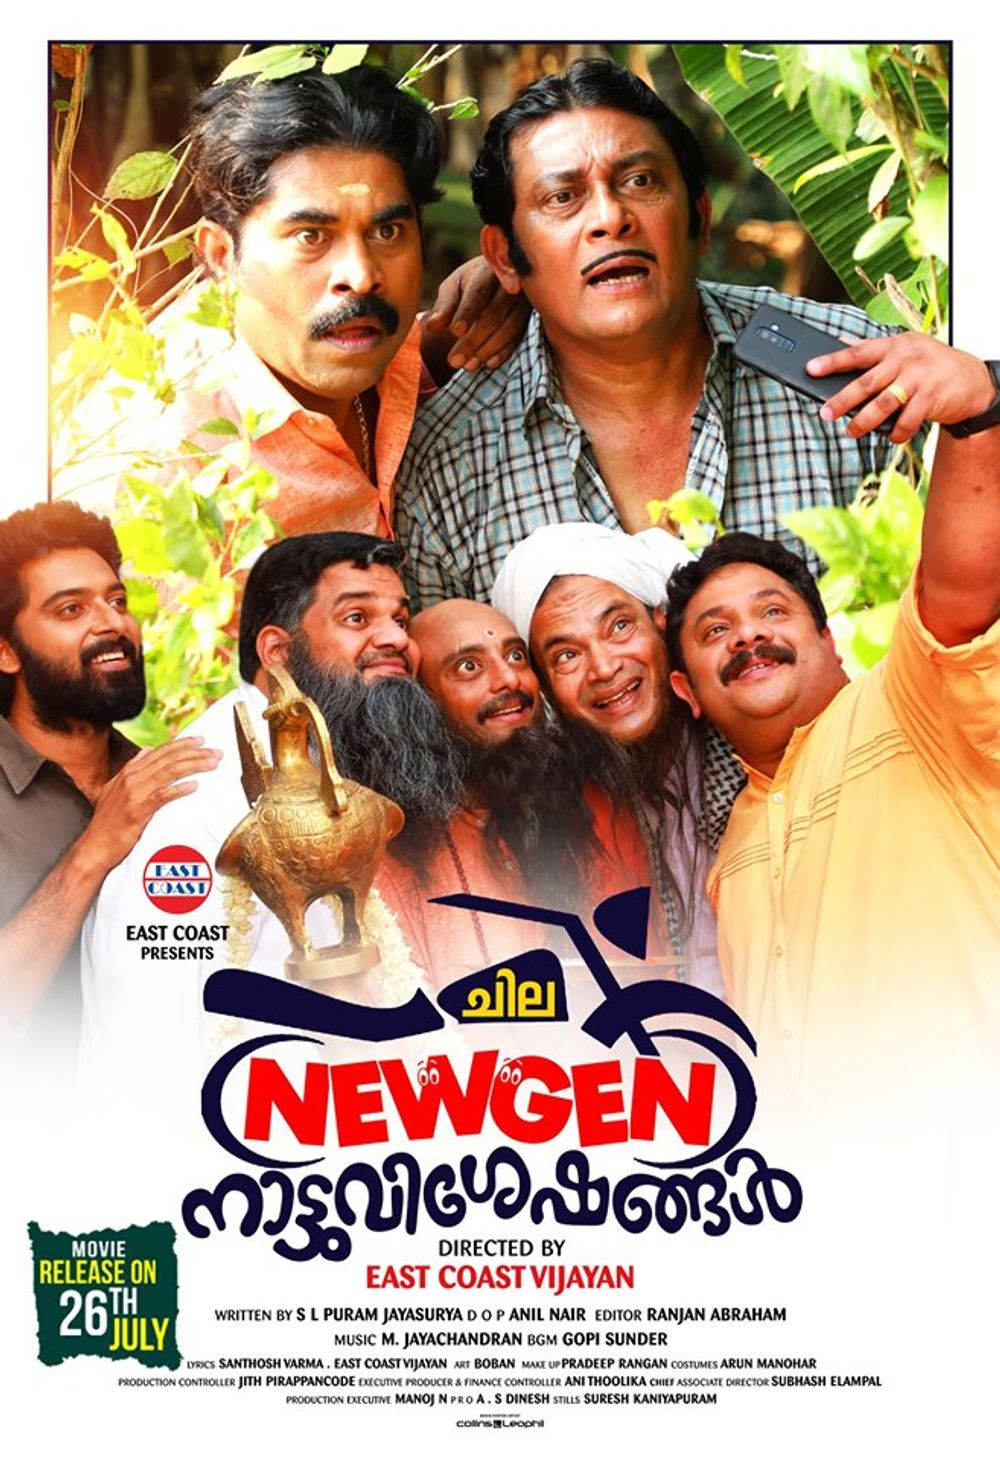 Chila NewGen Nattu Visheshangal Movie Review Malayalam Movie Review